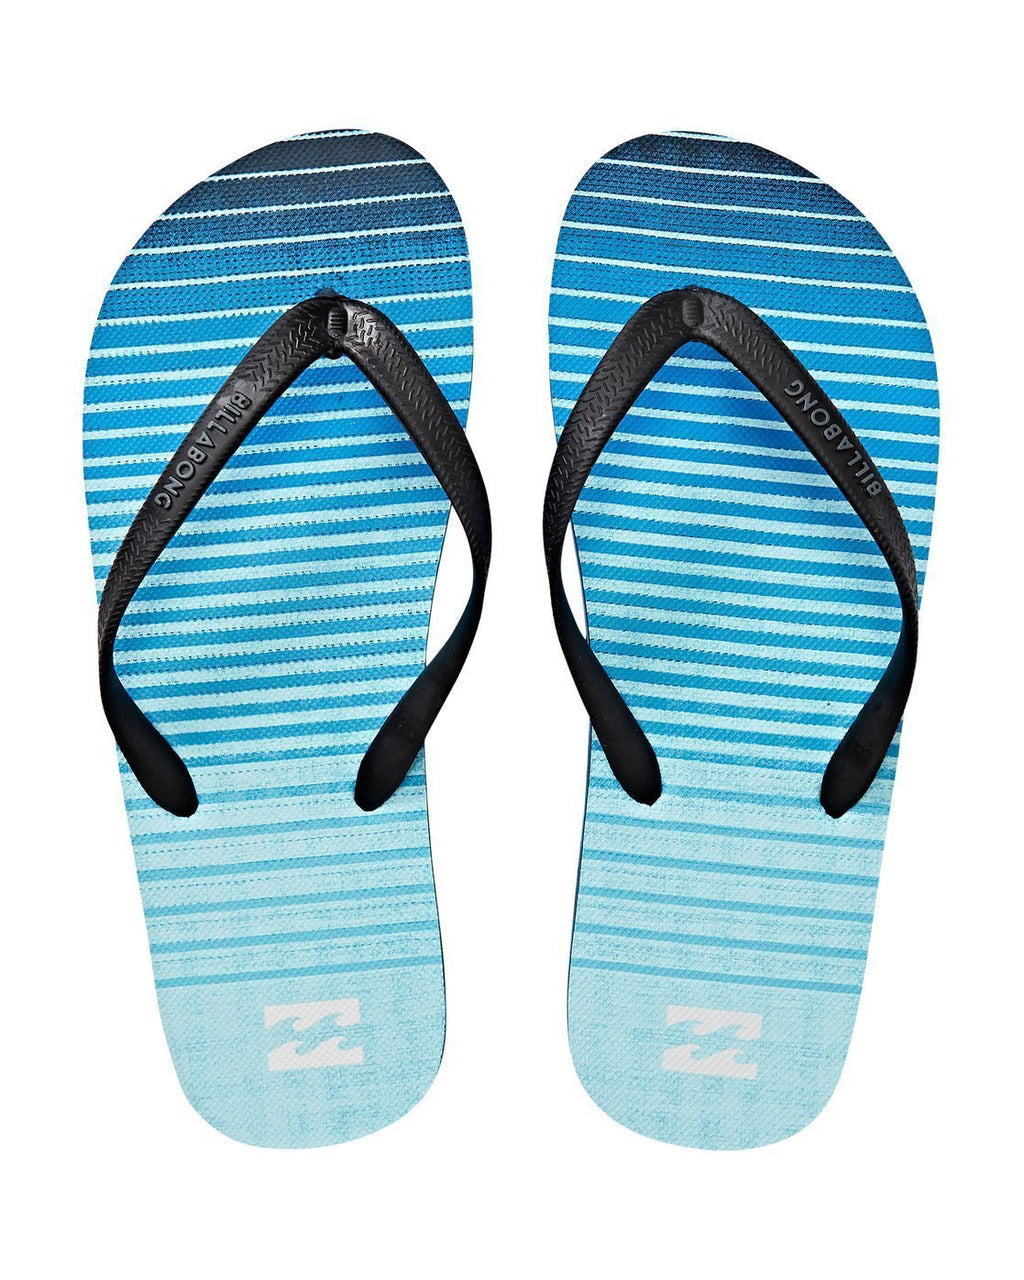 Billabong Men's Sandals Billabong - Tides Sandals